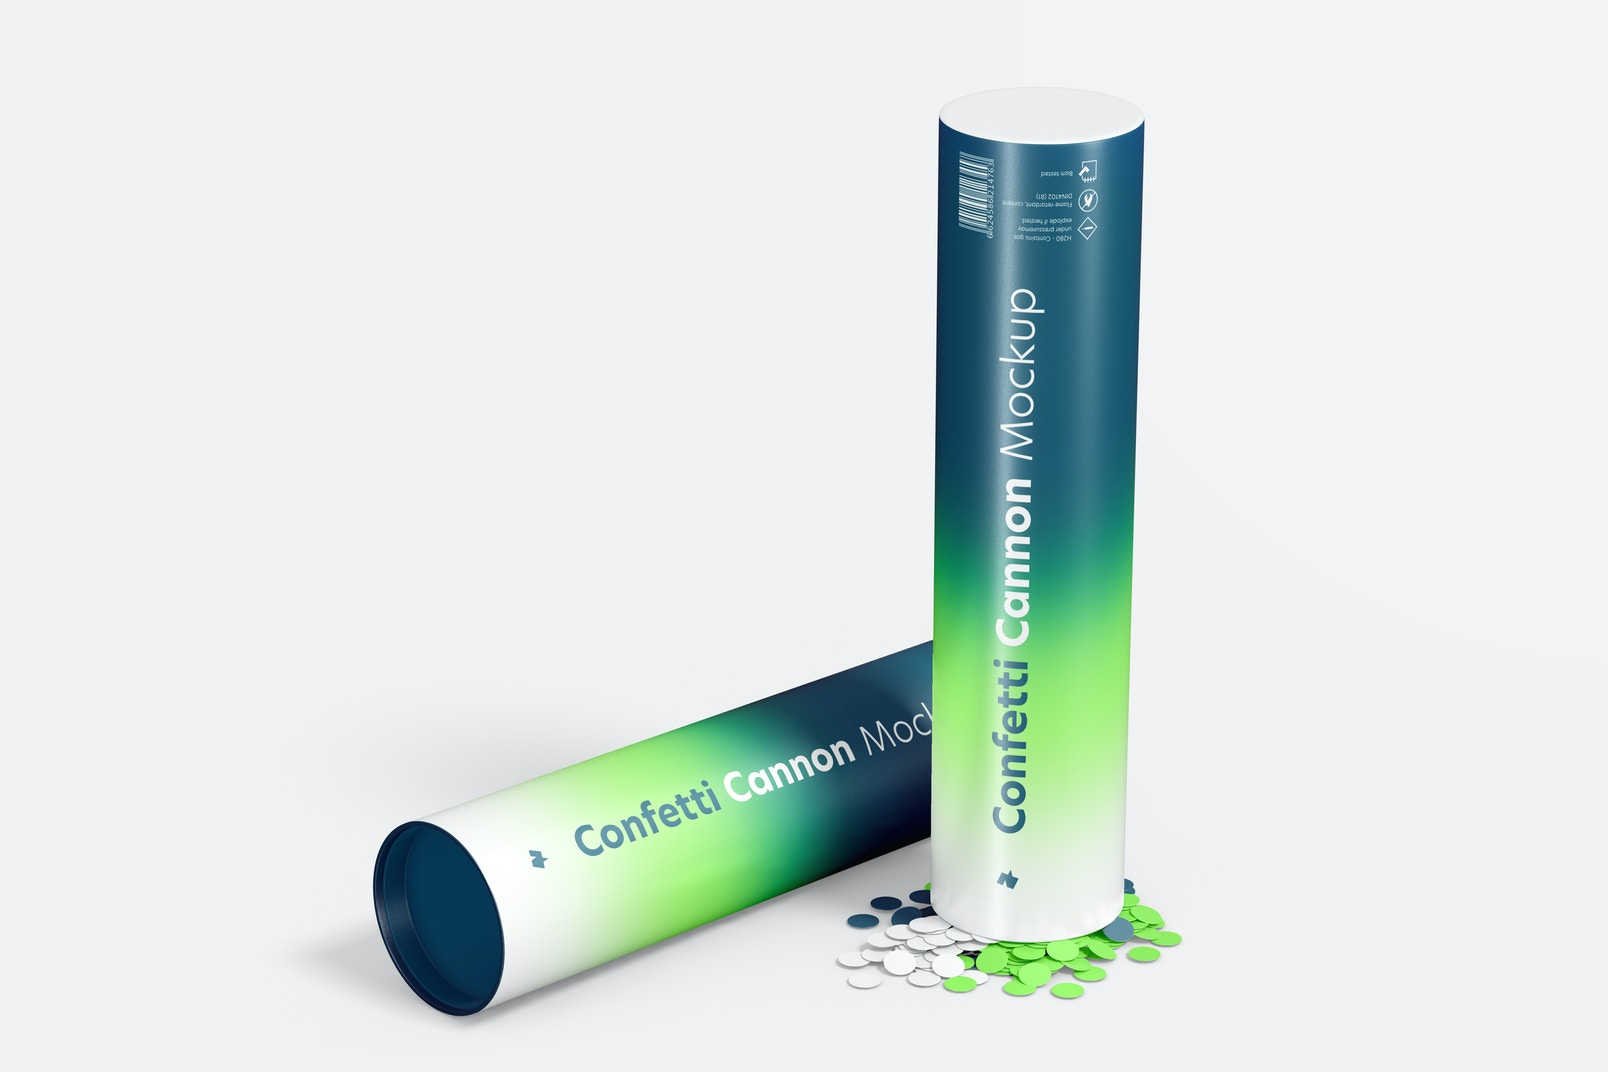 Confetti Cannon Mockup, Standing and Dropped